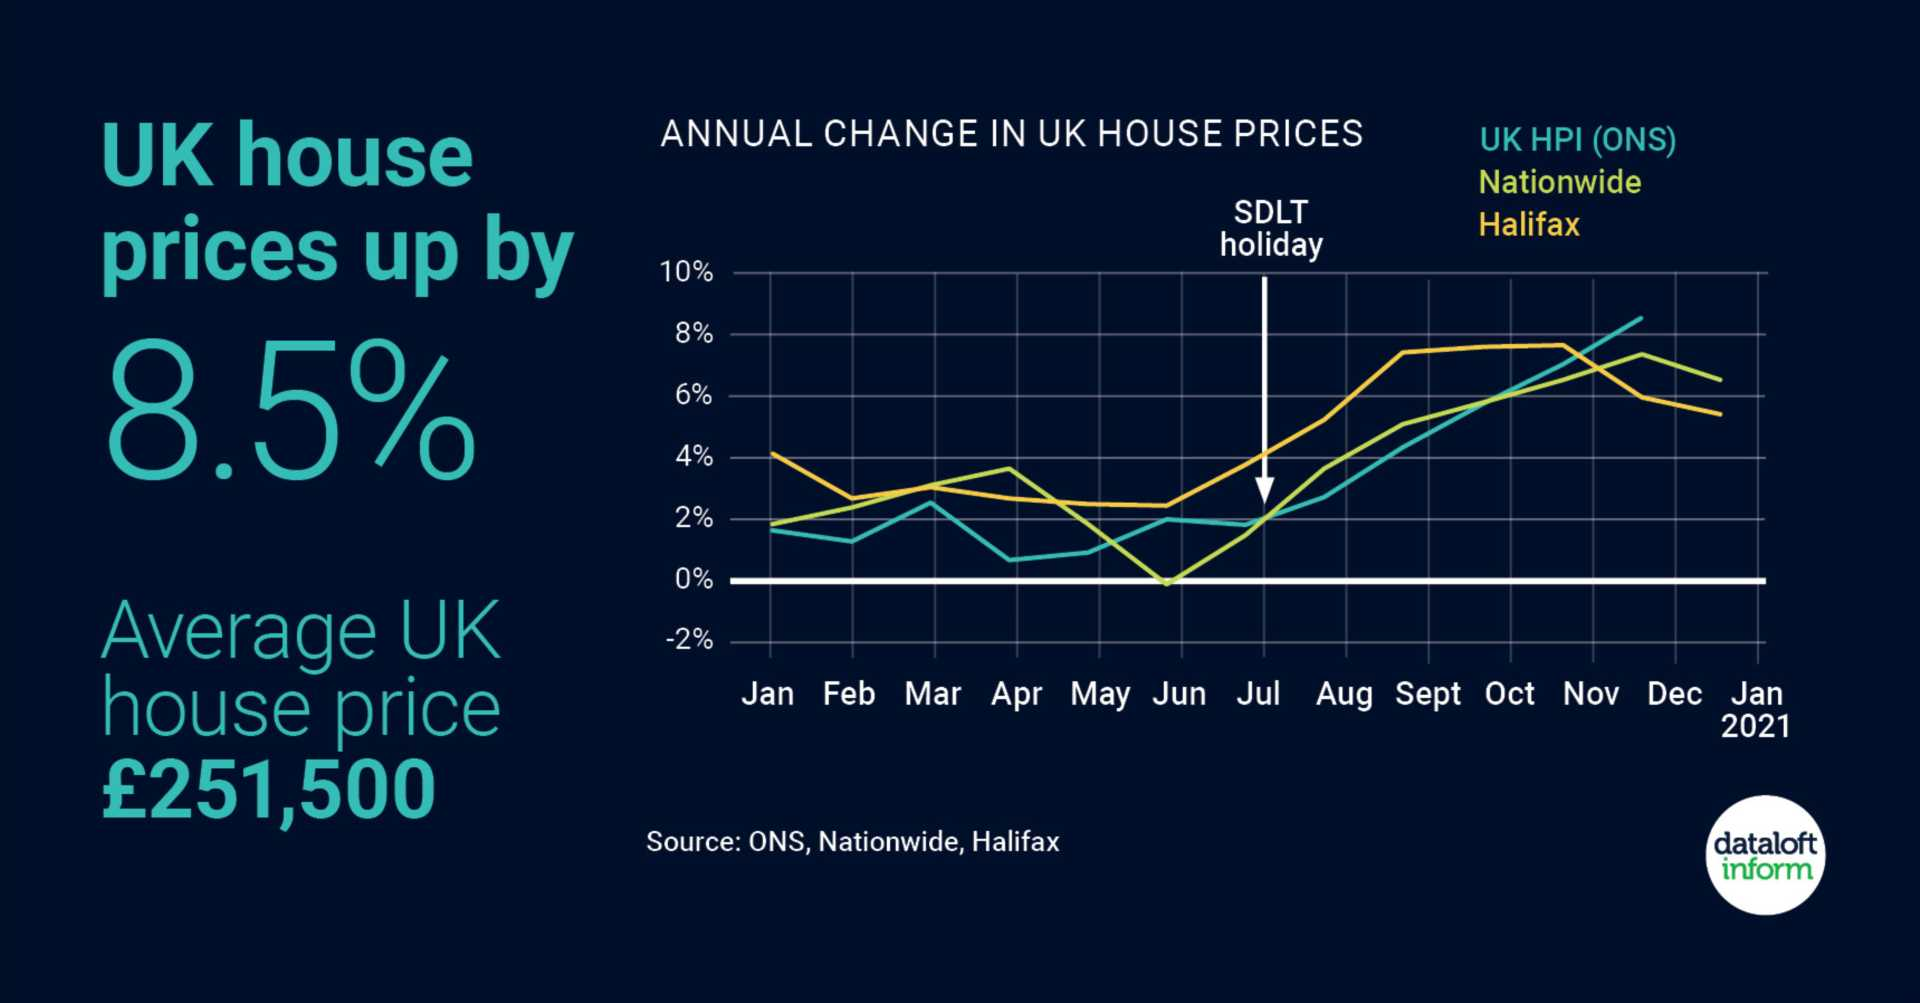 UK house prices up by 8.5%